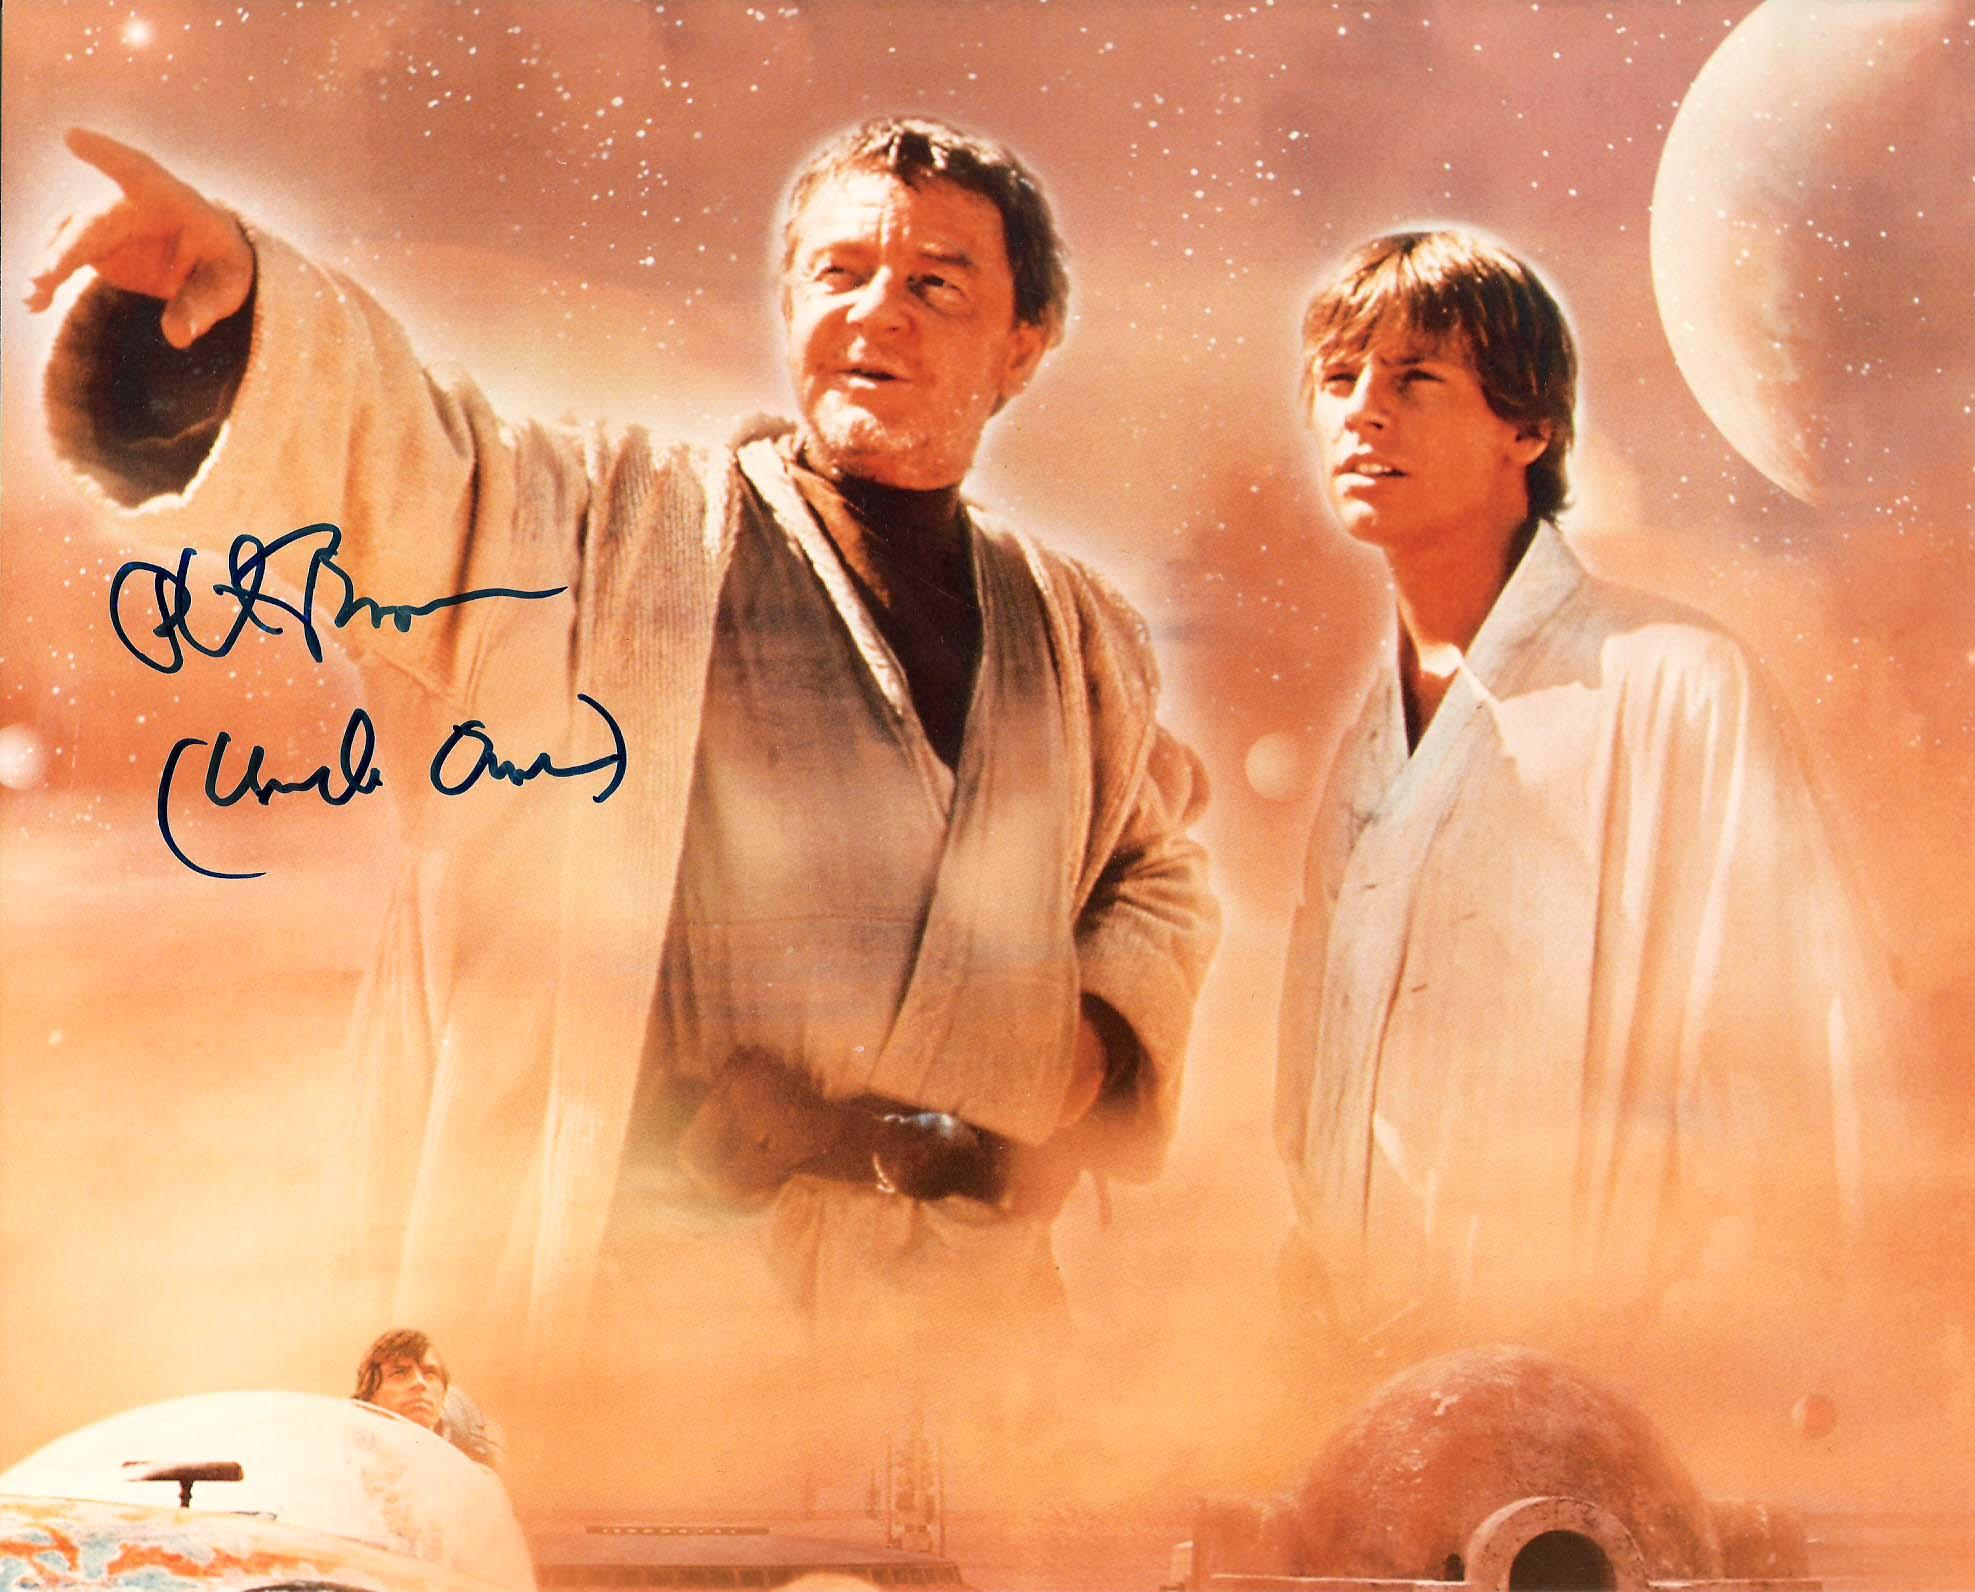 """PHIL BROWN """"STAR WARS"""" as UNCLE OWEN LARS Signed 10x8 Color Photo"""